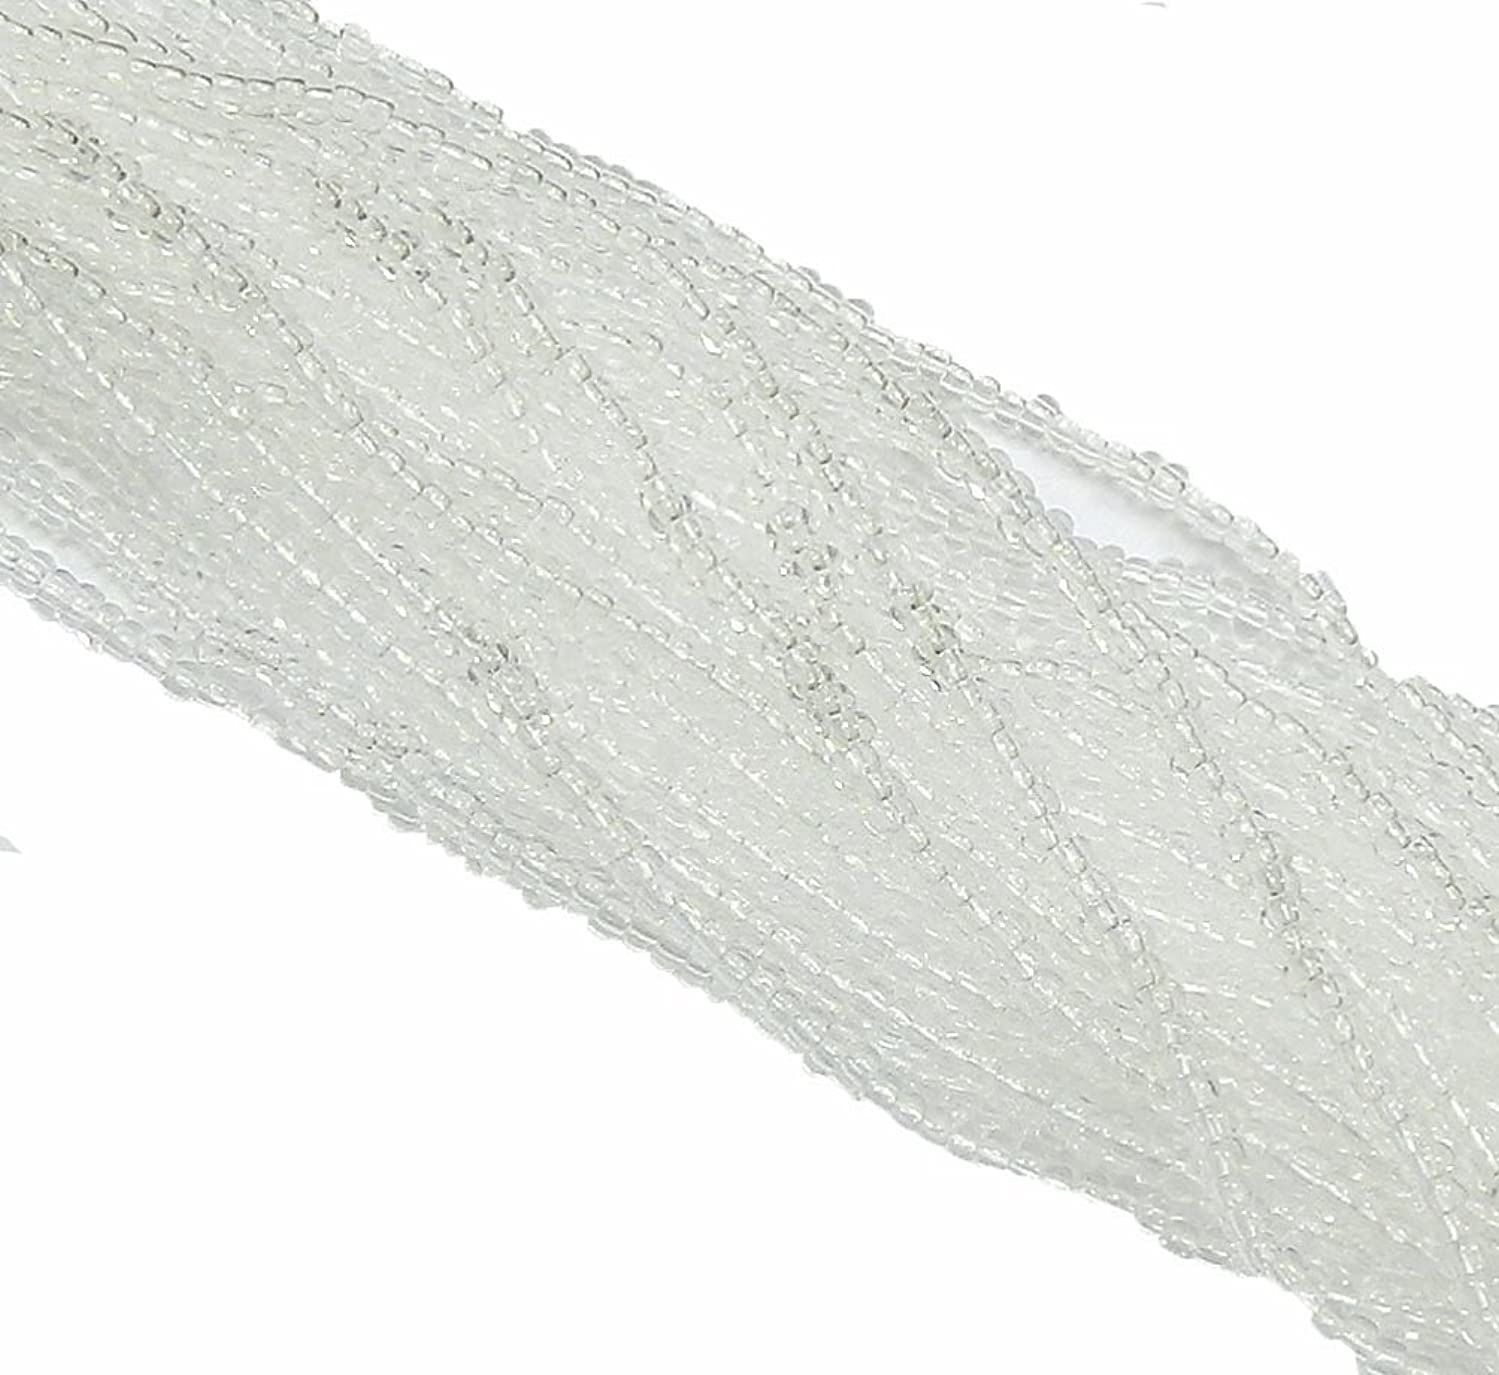 Crystal Clear Czech 6/0 Seed Bead on Loose Strung 6 String Hank Approx 900 Beads